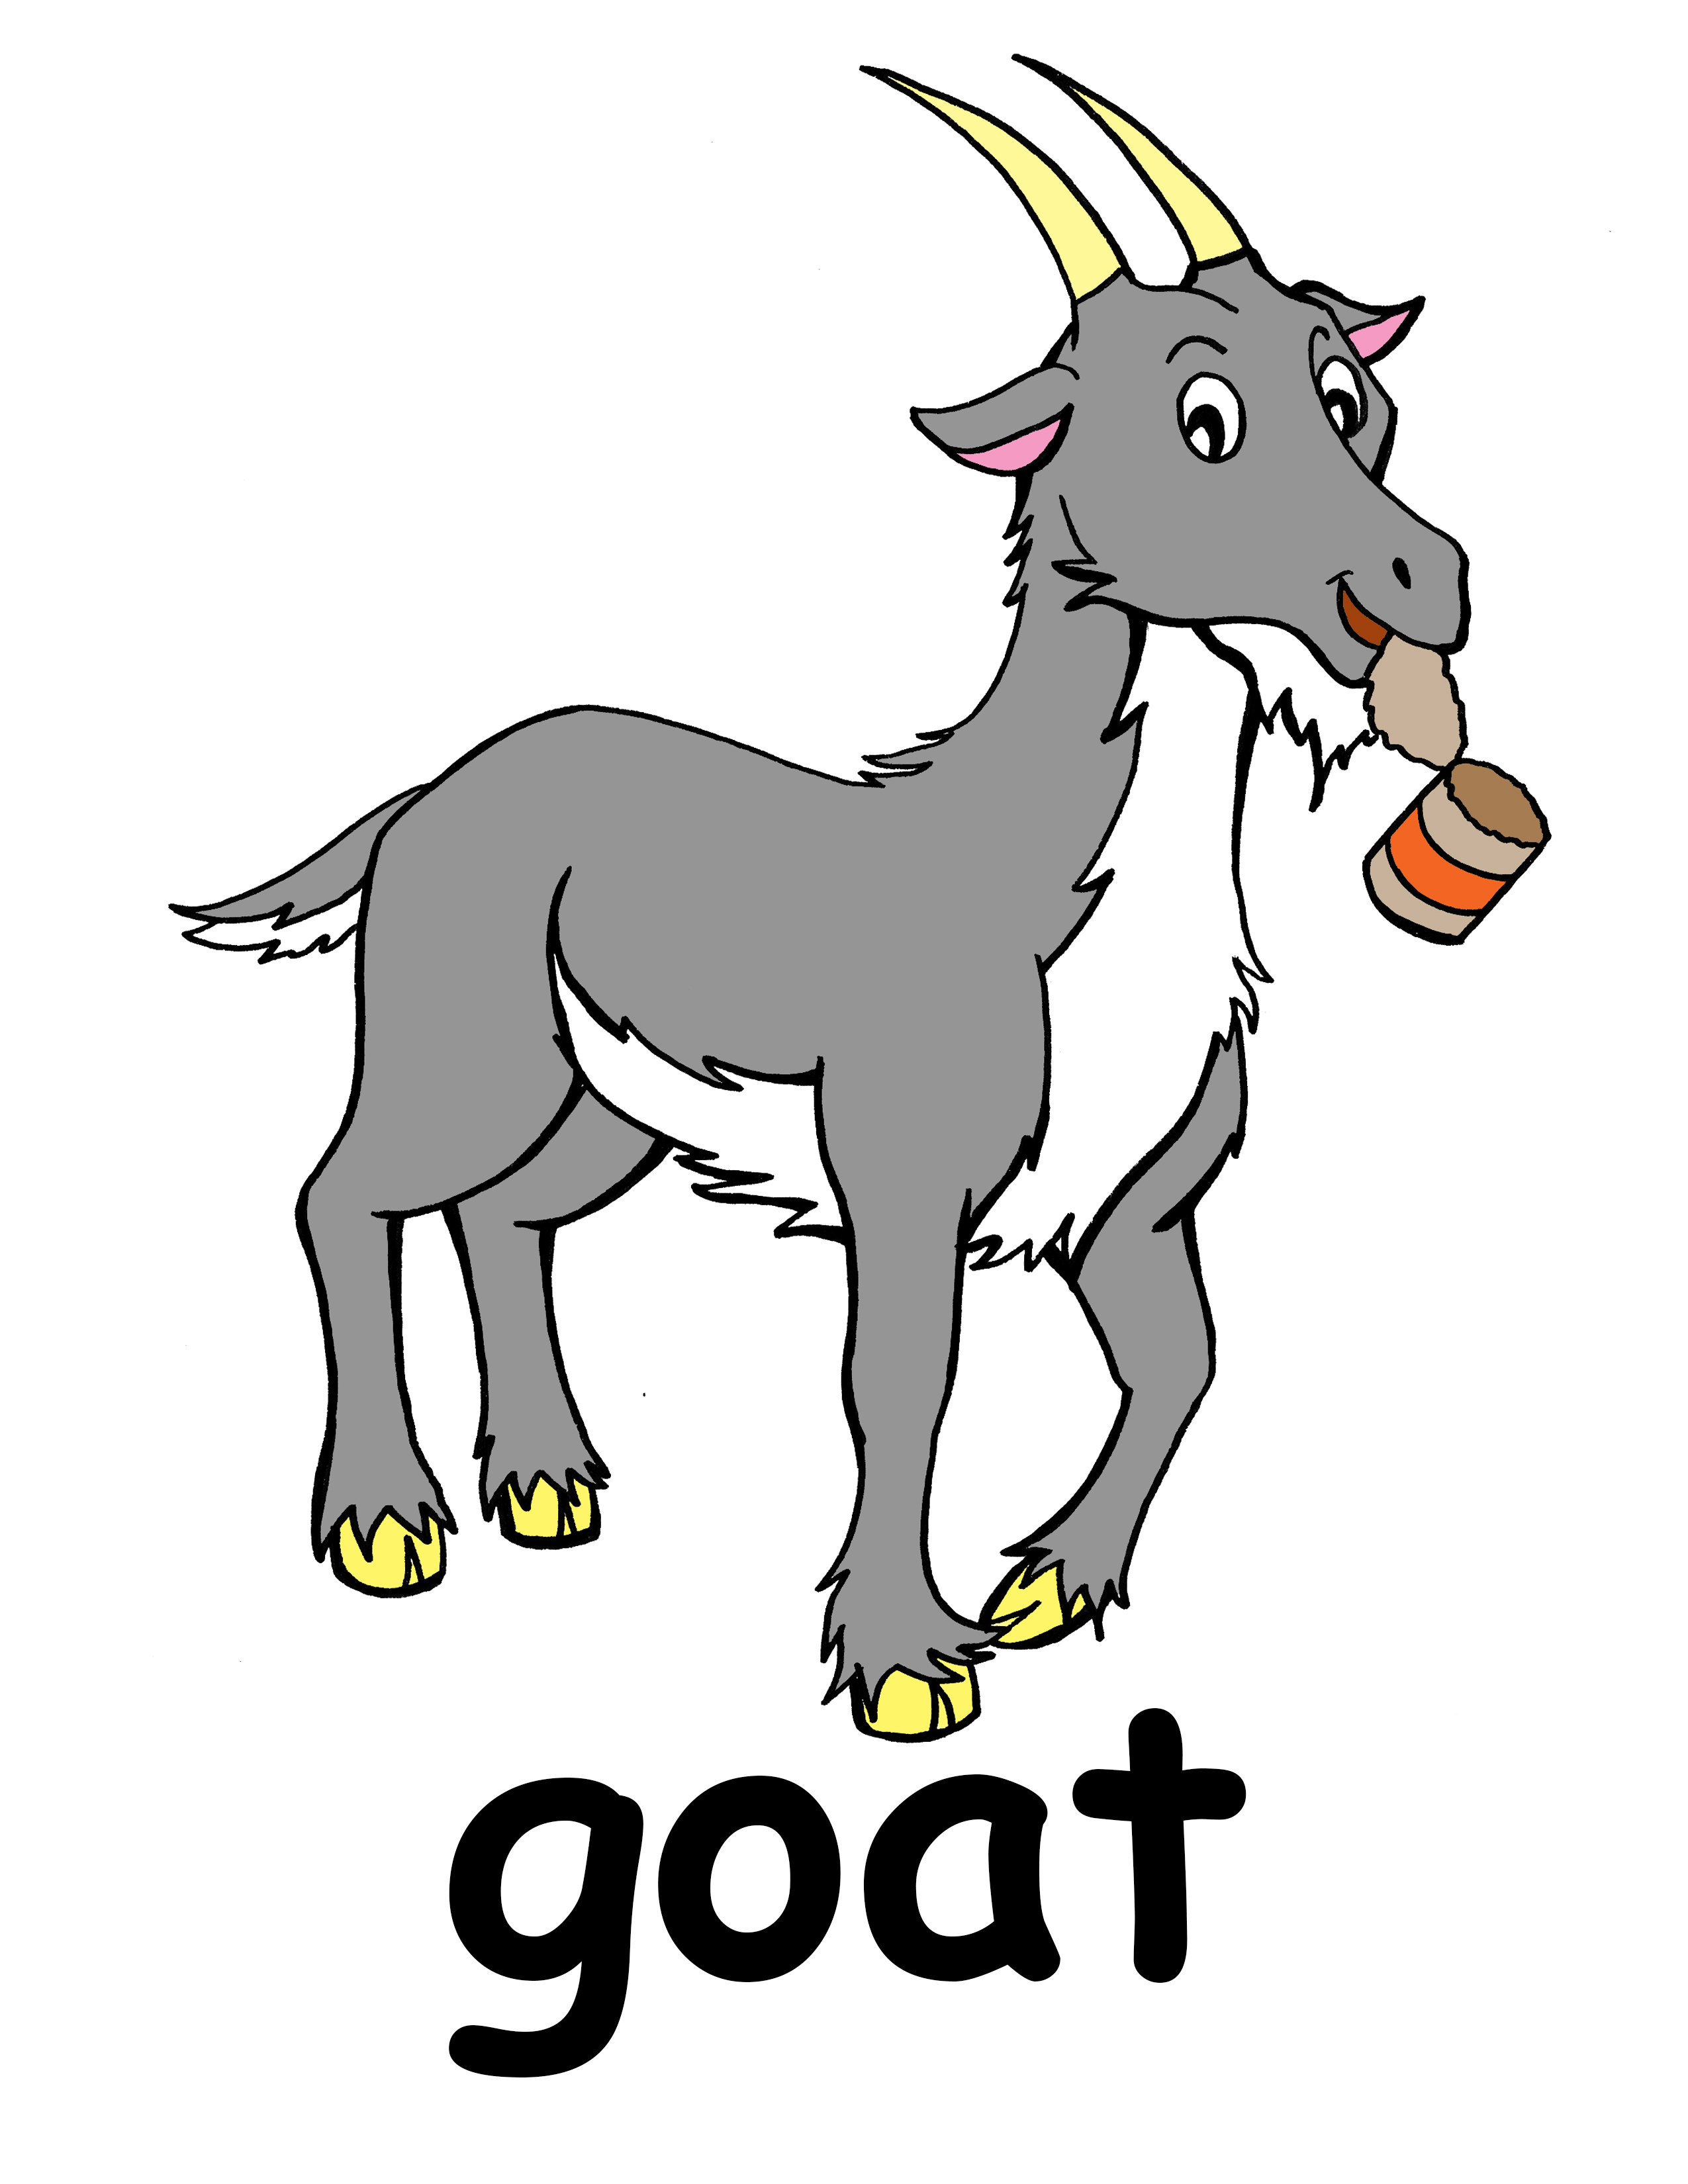 Goat clipart #3, Download drawings